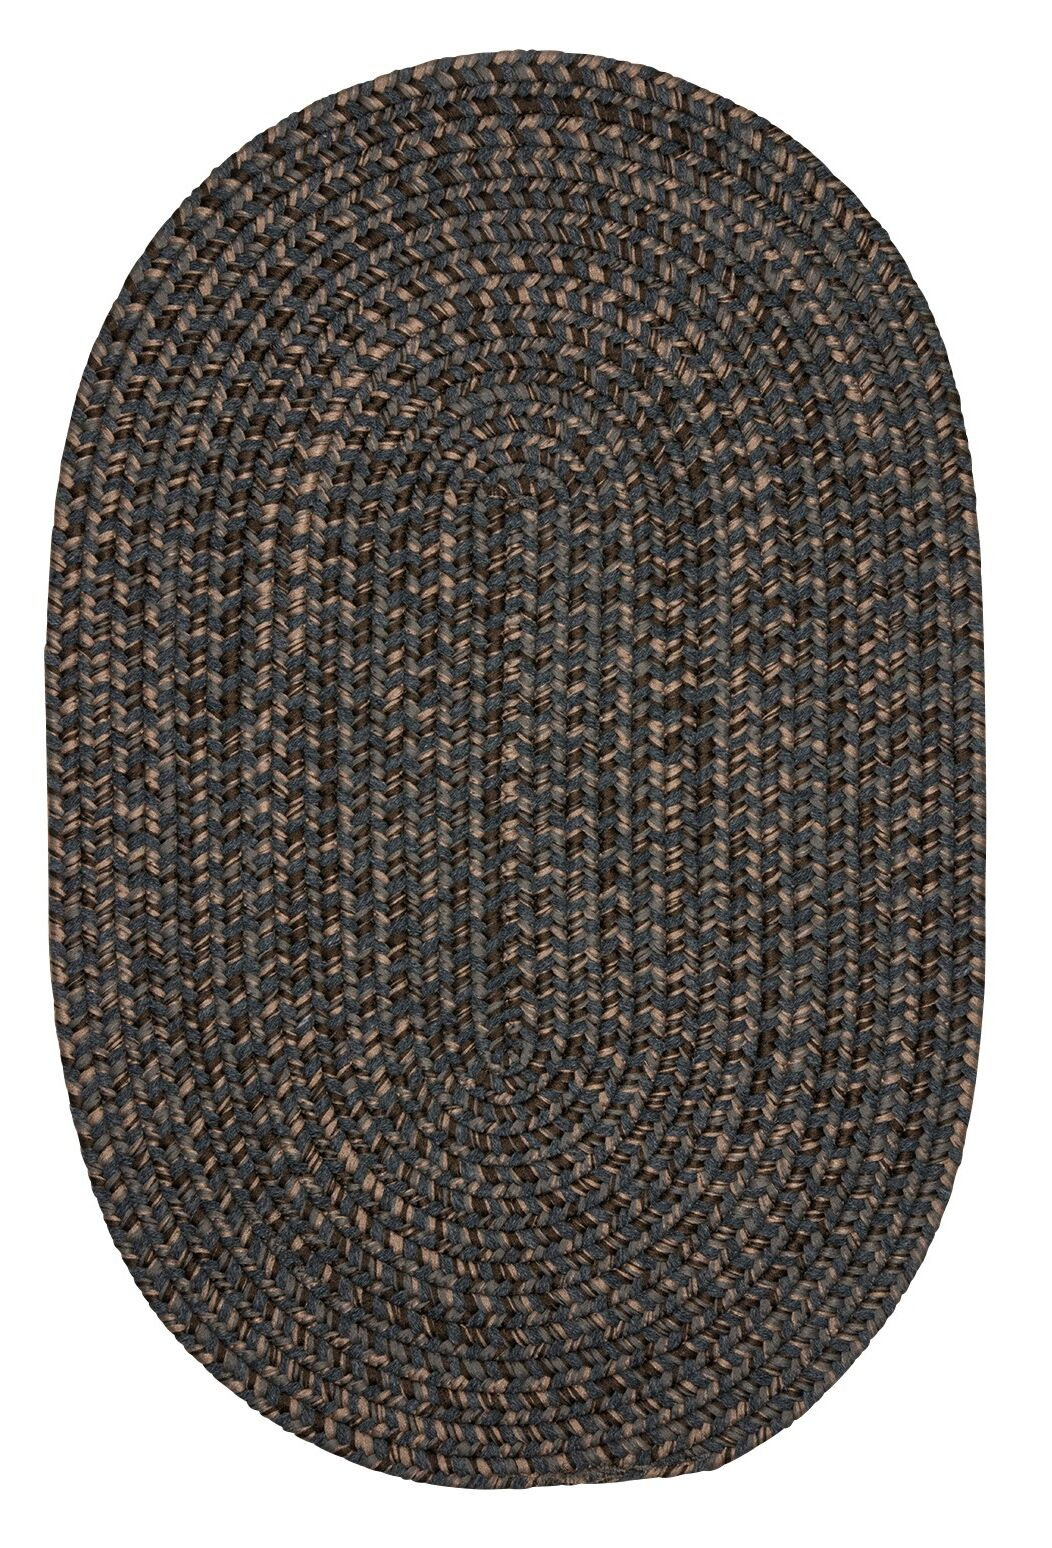 Abey Charcoal Area Rug Rug Size: Oval 7' x 9'